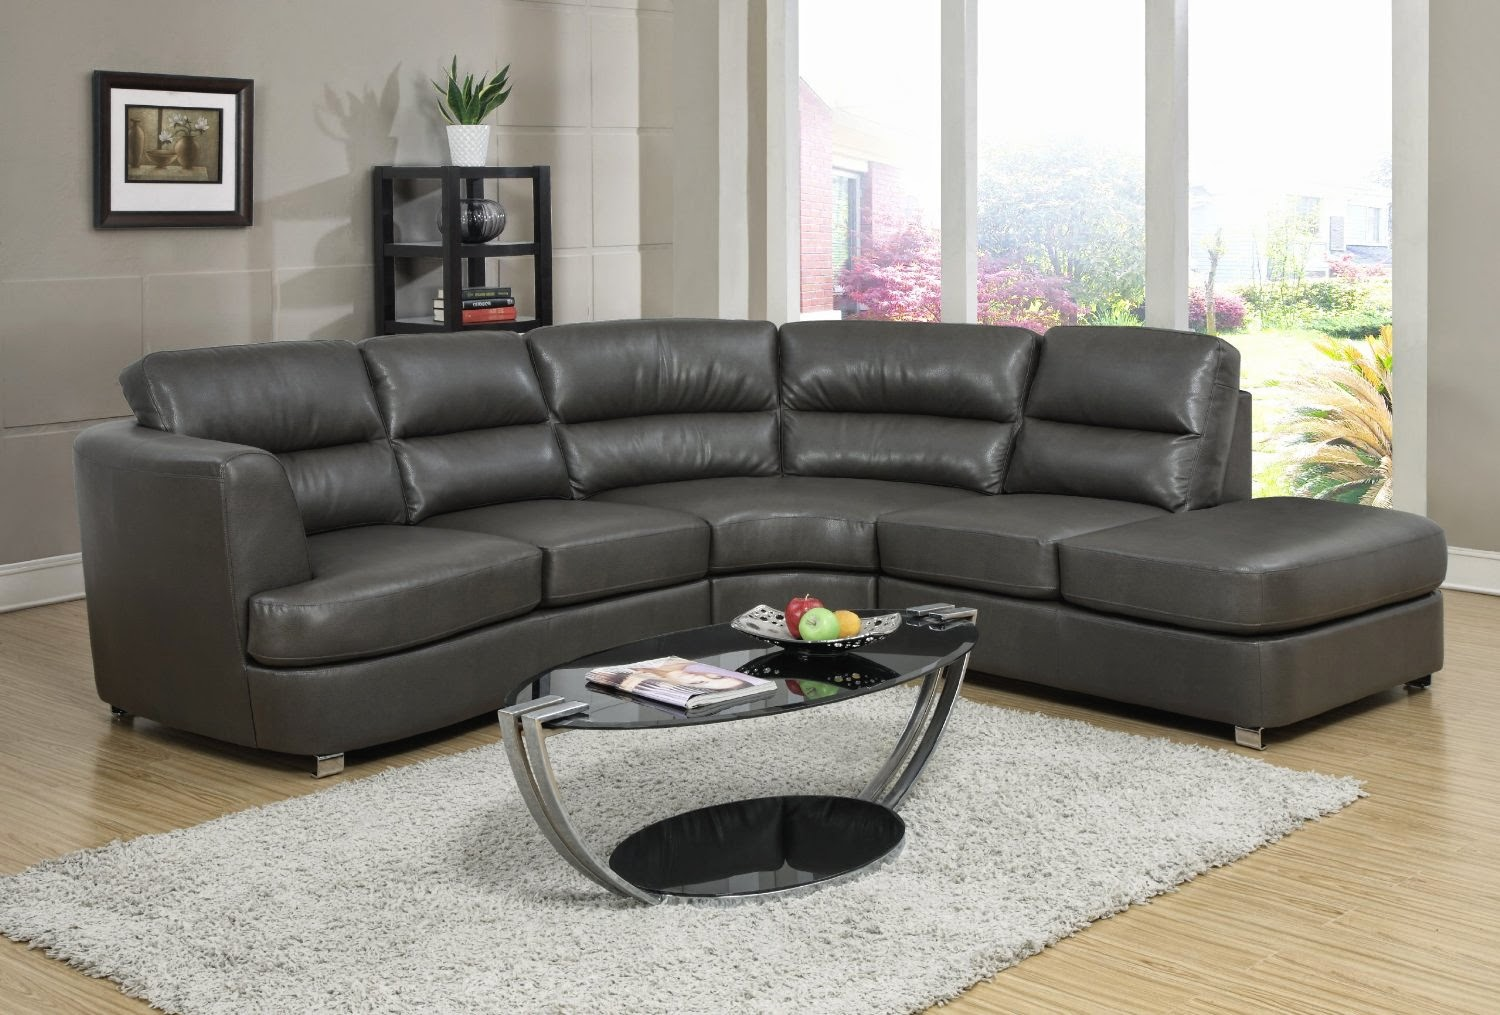 Grey Couch: Grey Leather Couch